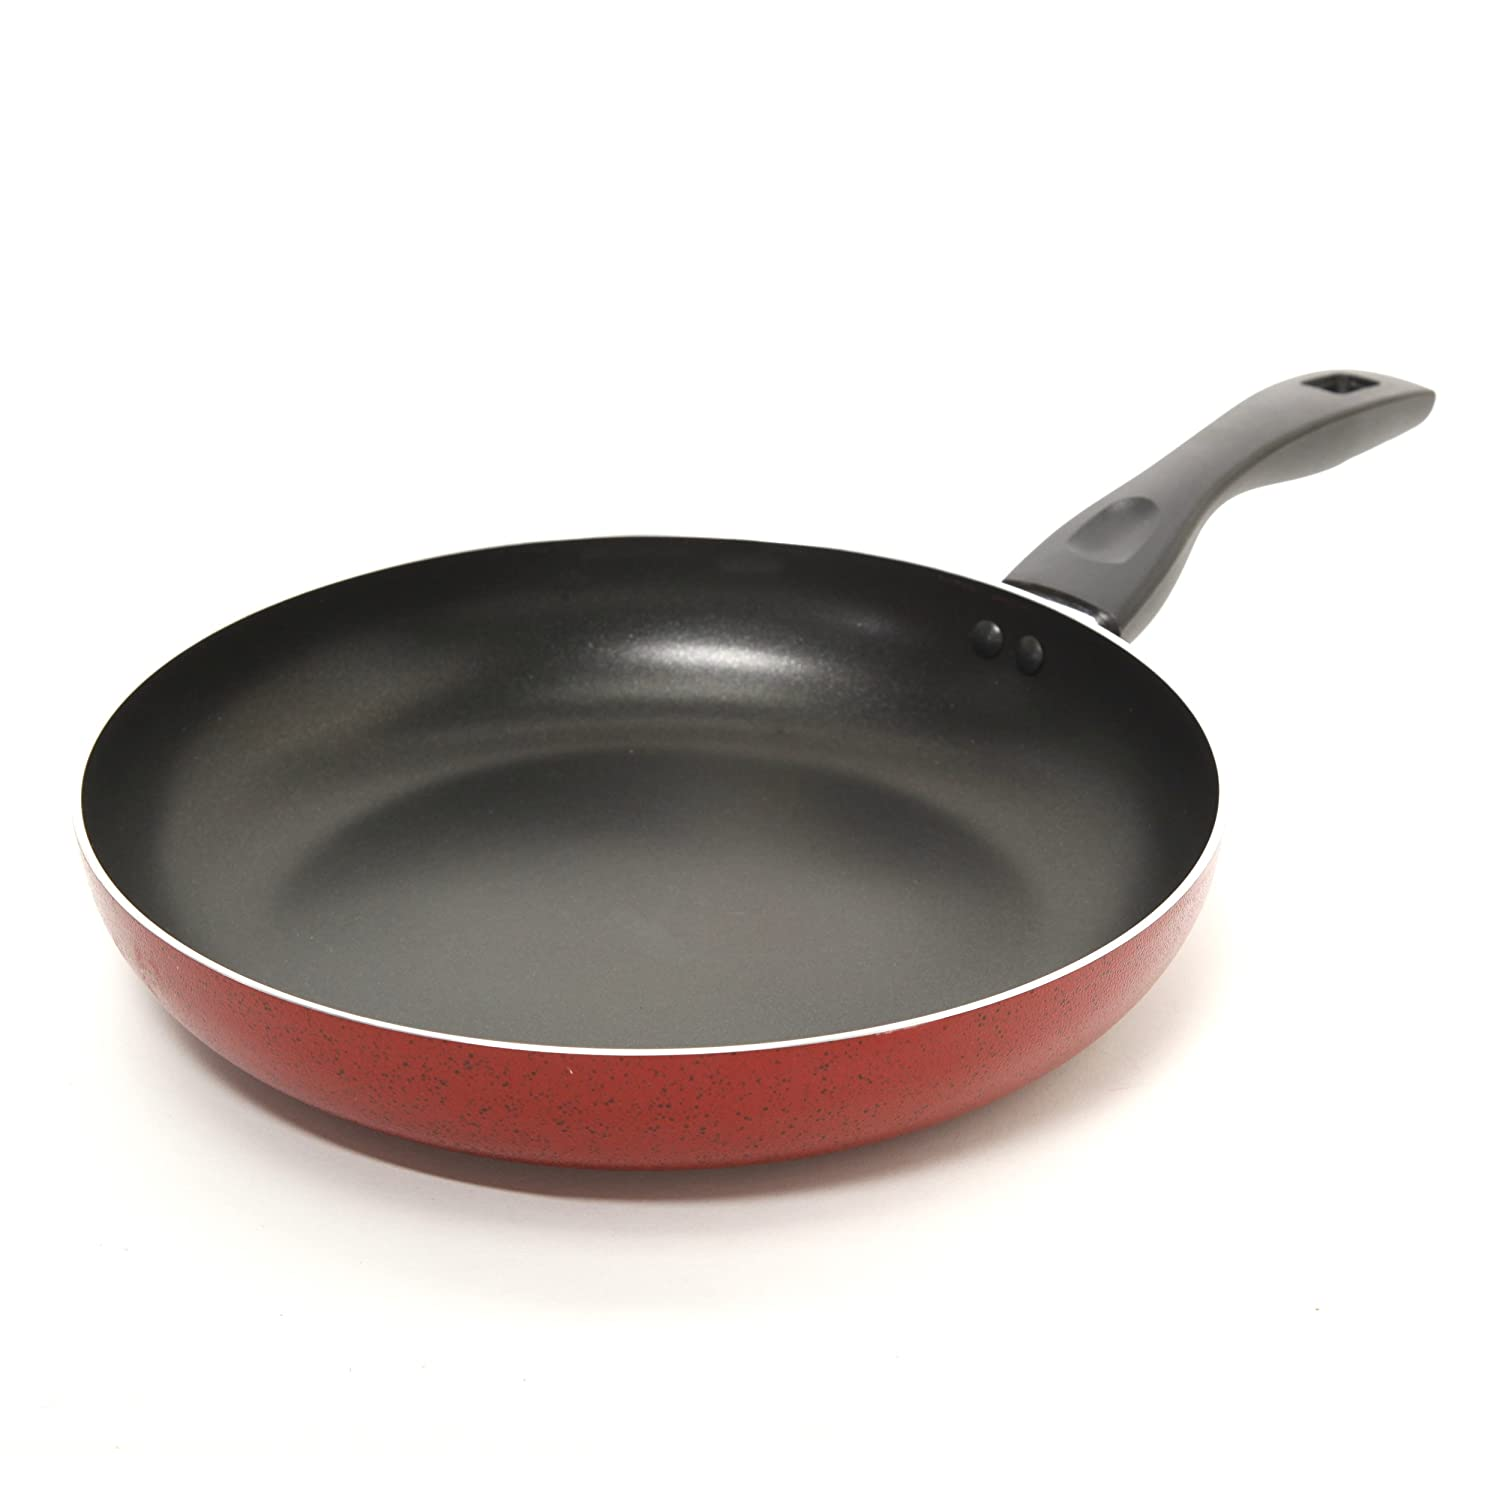 Amazon.com: Oster 91114.01 Telford Fry Pan, 12-Inch, Red: Stir Fry Pans: Kitchen & Dining